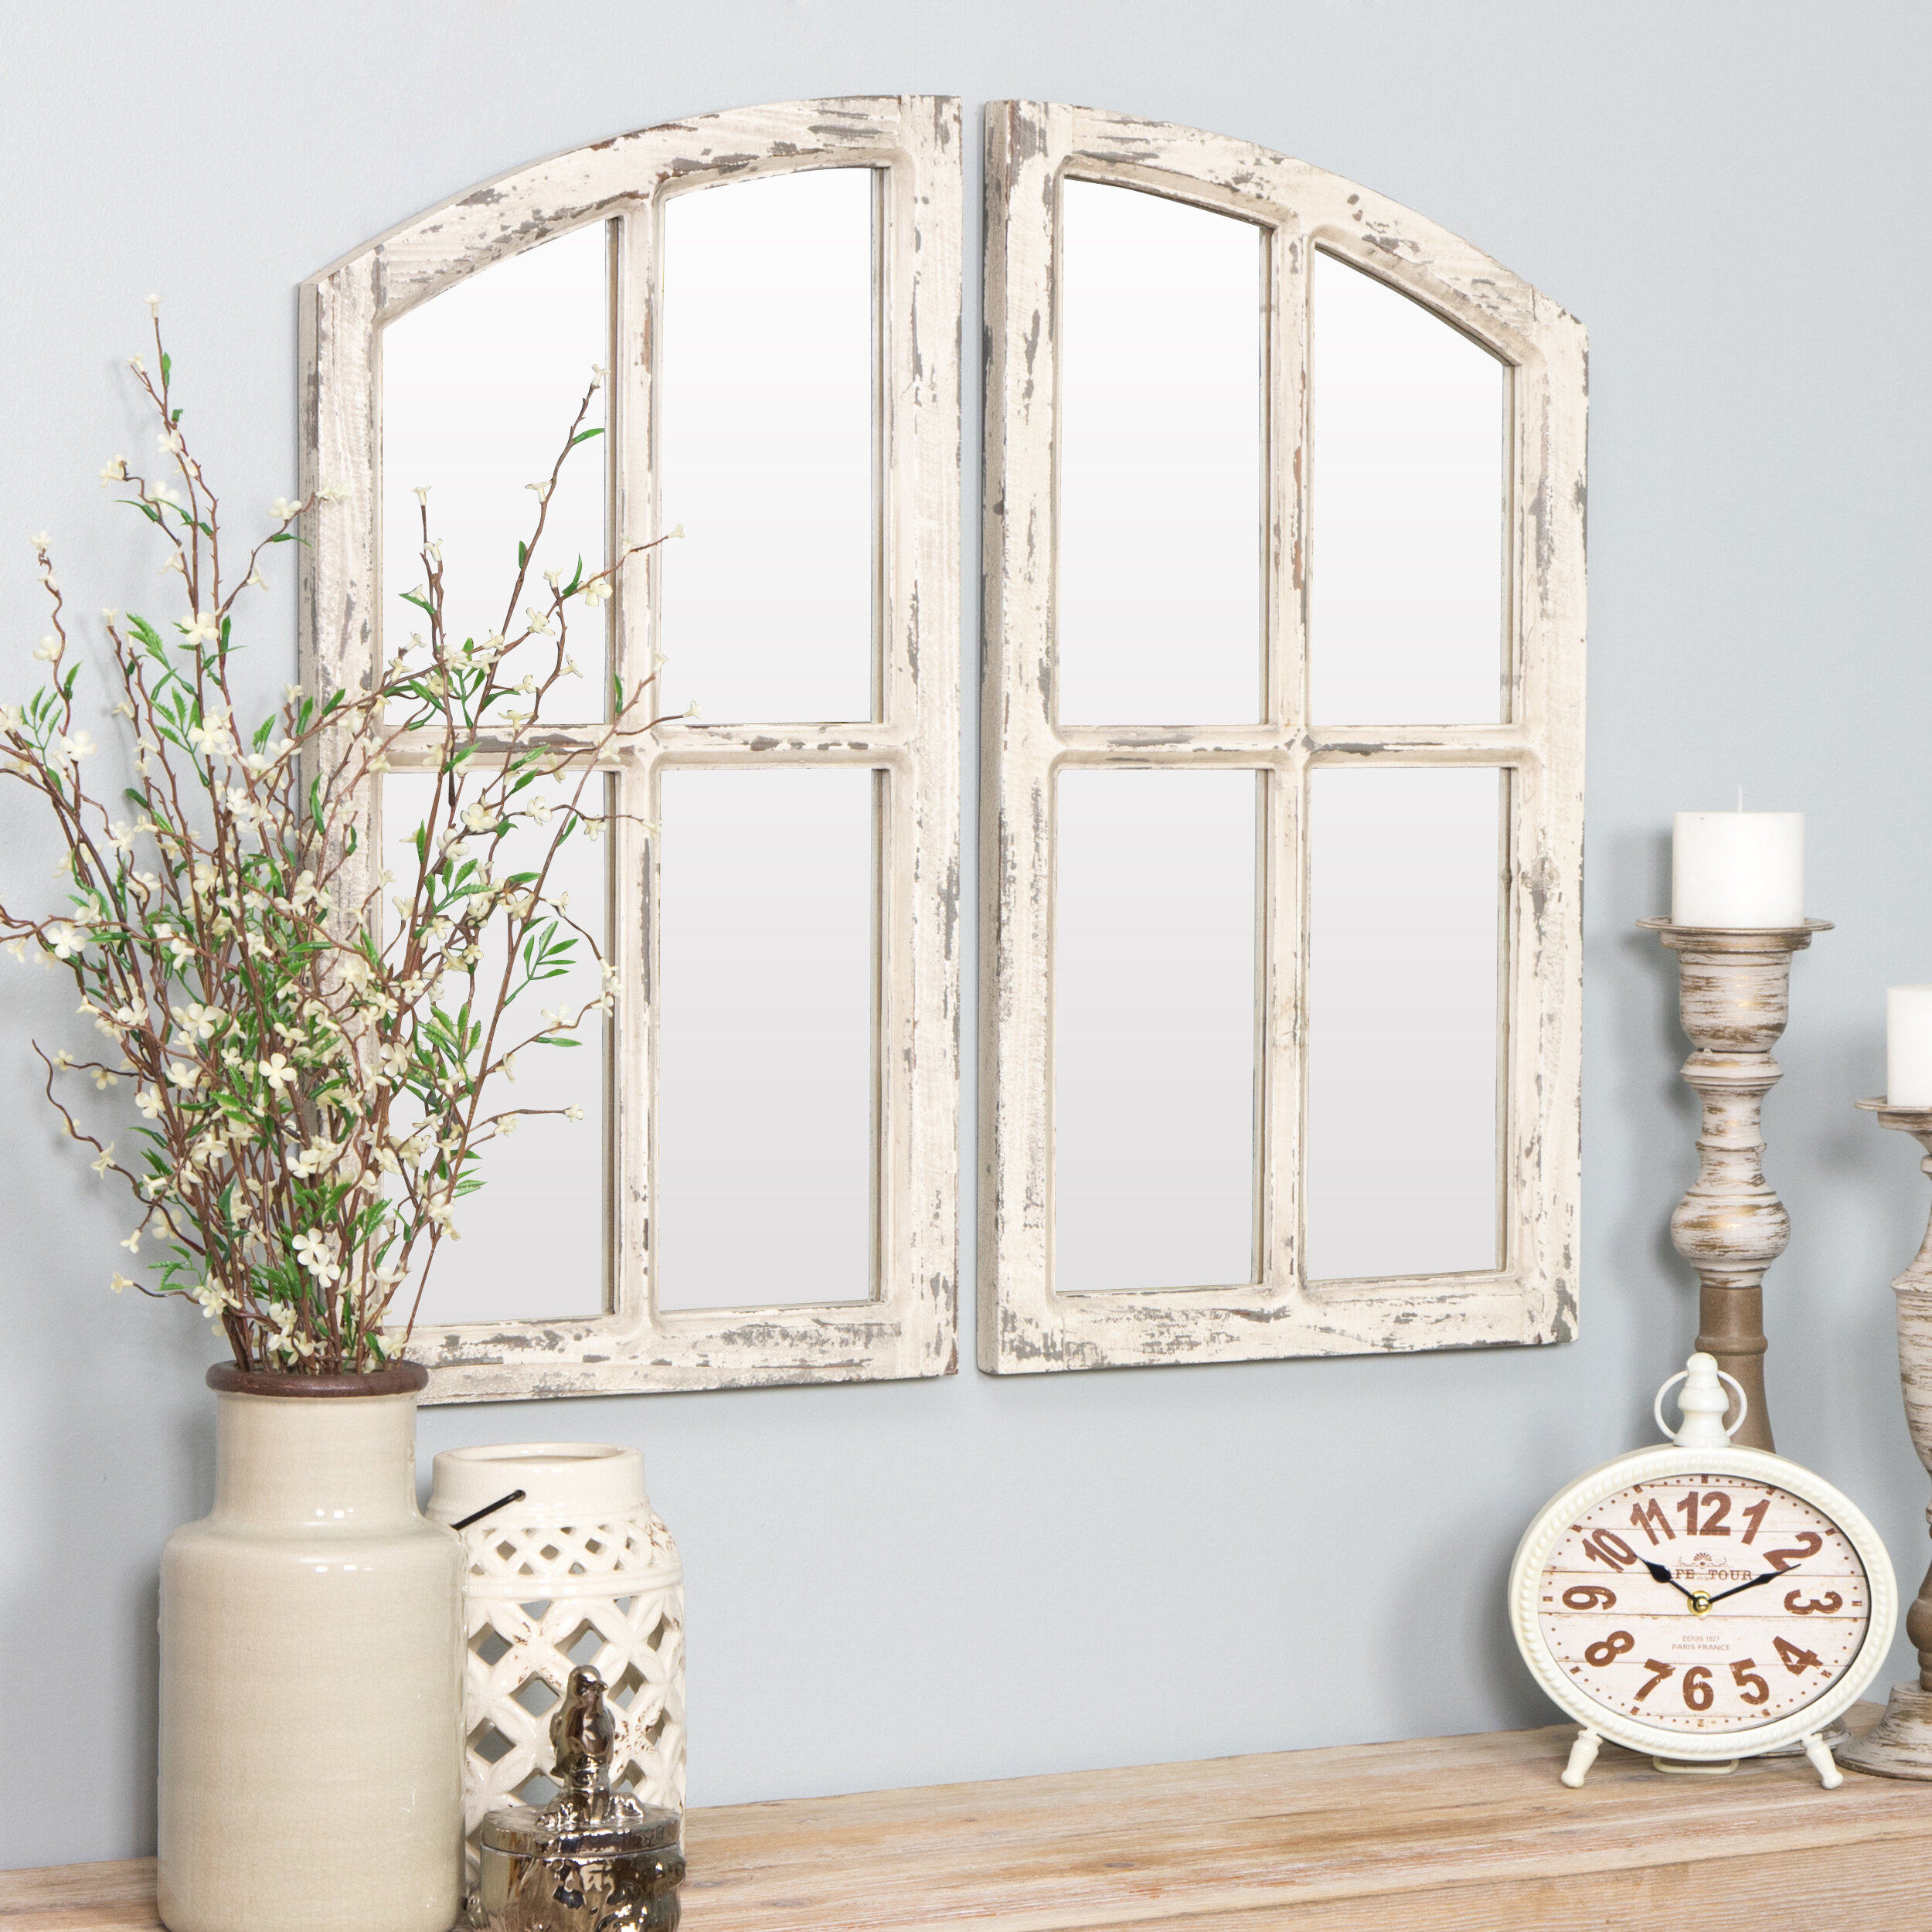 Cottage Country Wall Mirrors You Ll Love In 2021 Wayfair